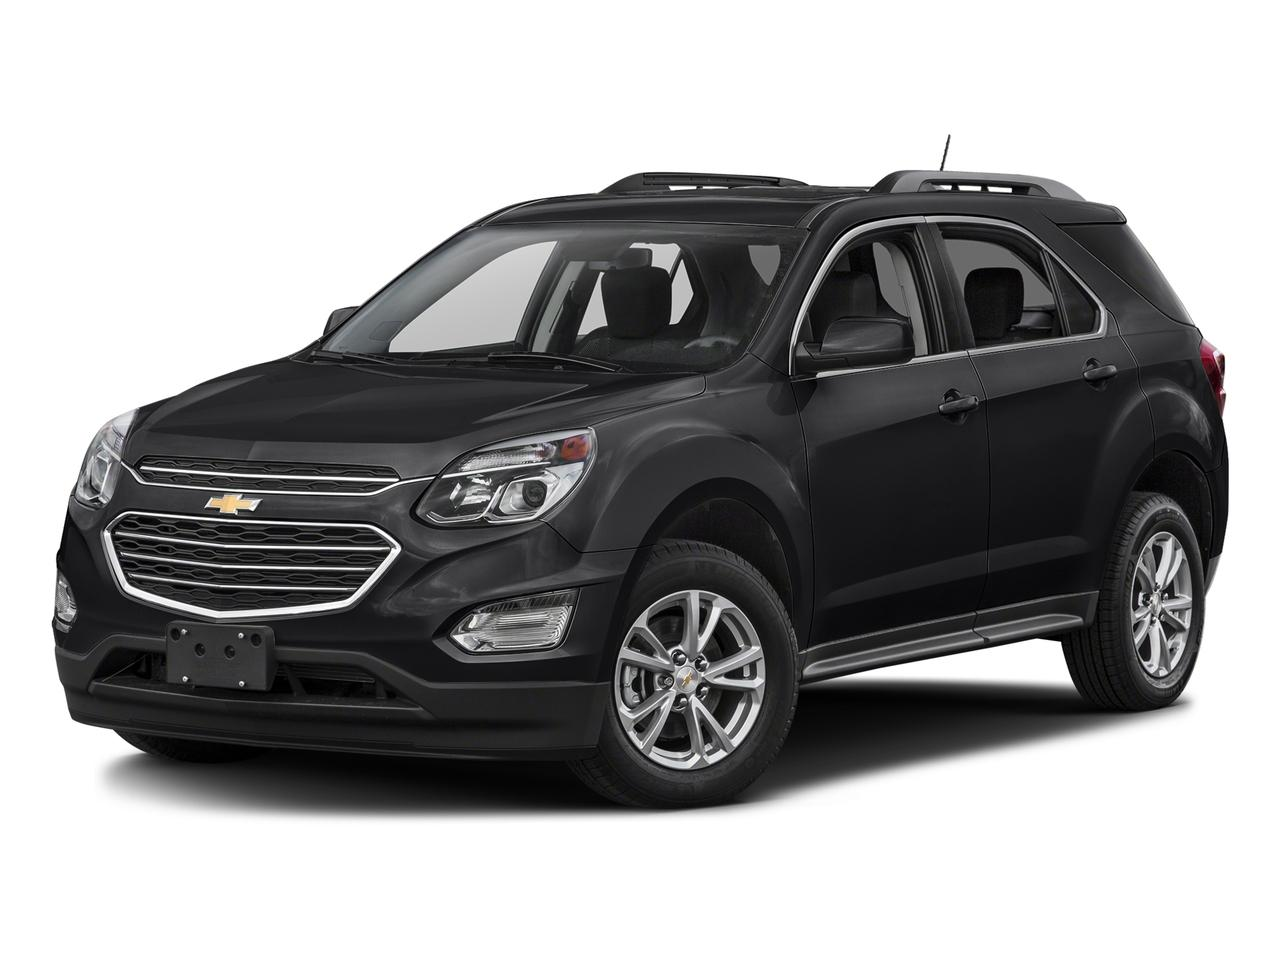 2016 Chevrolet Equinox Vehicle Photo in Vincennes, IN 47591